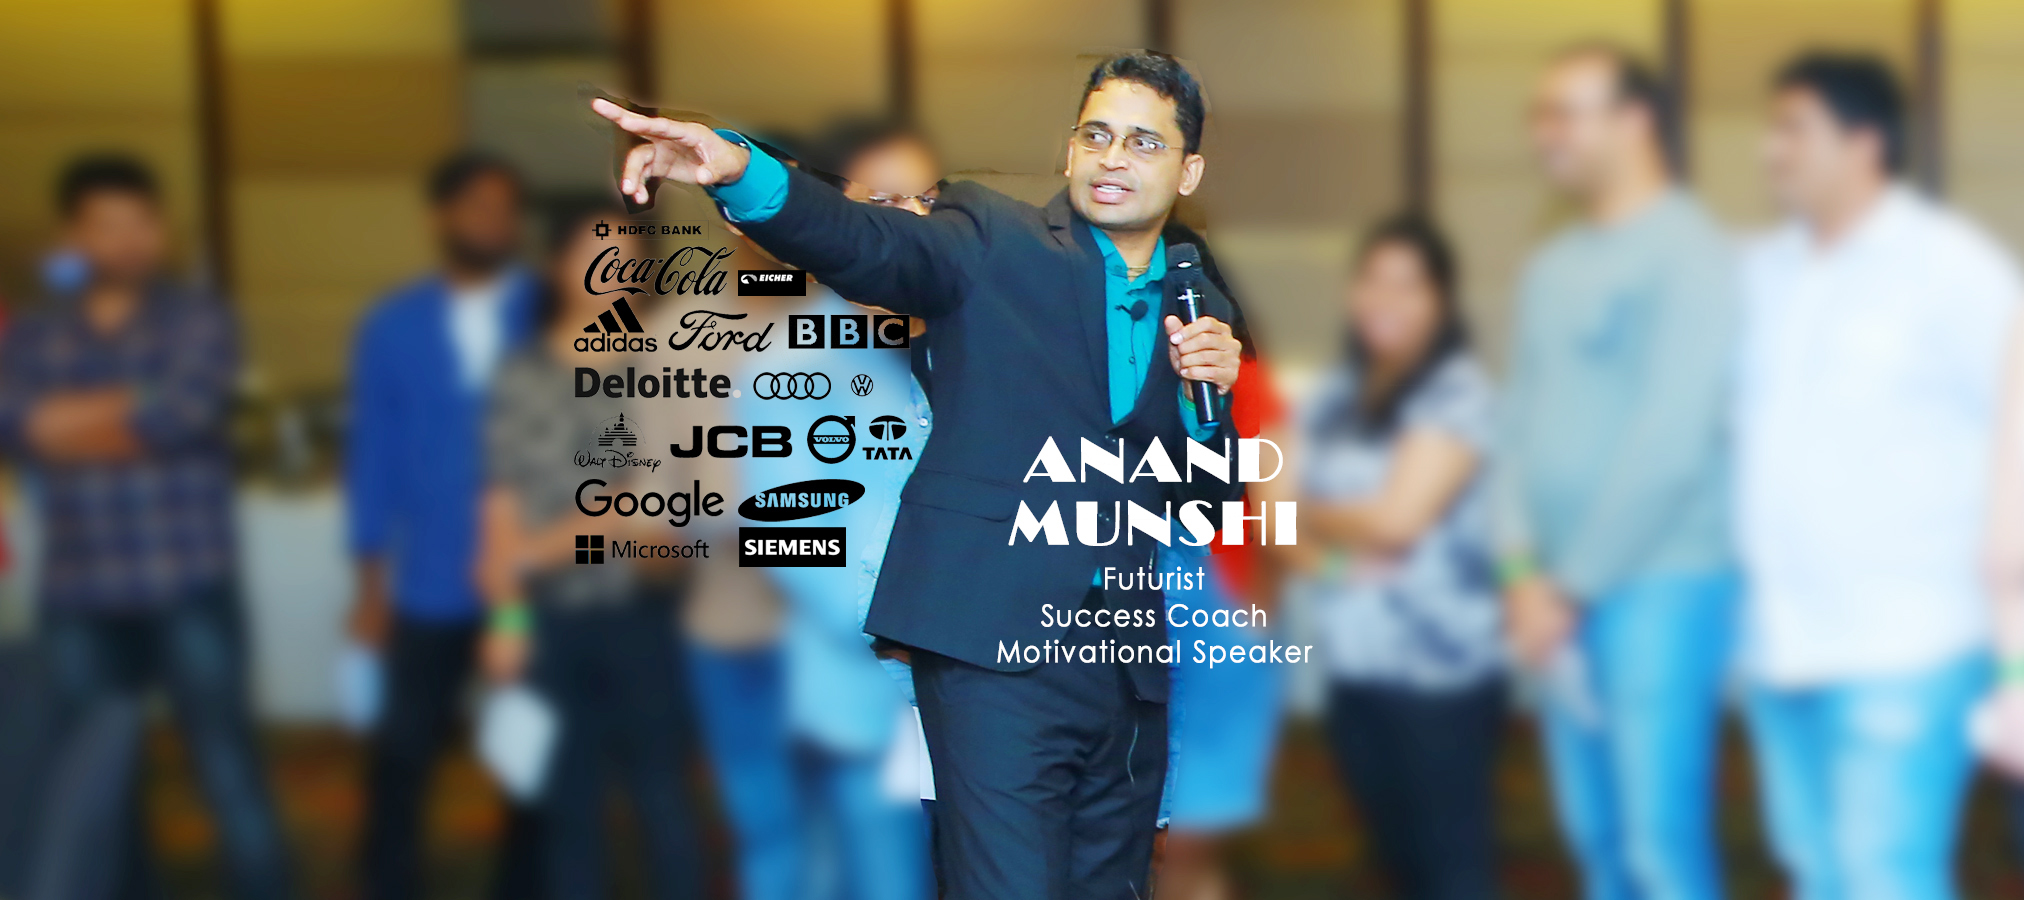 Motivational-Speaker-in-India-Anand-Munshi-1